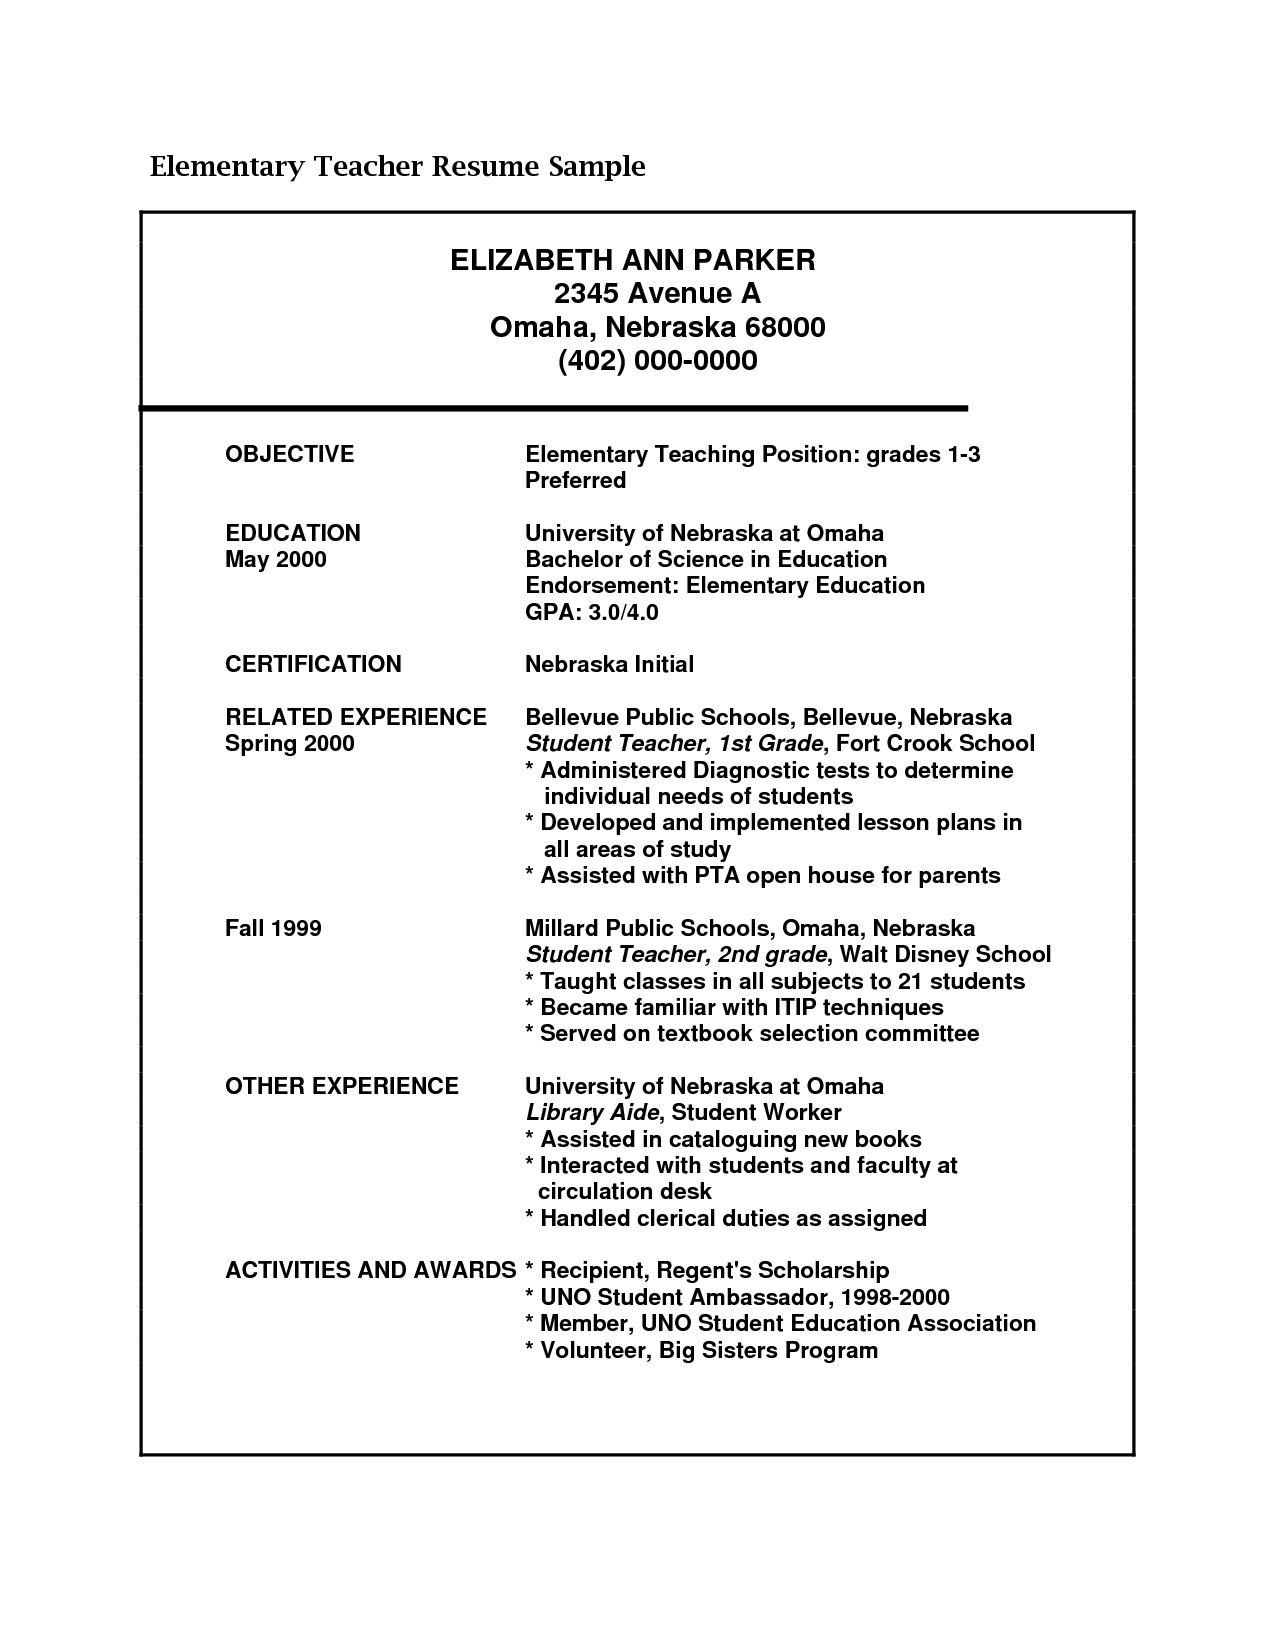 Cv For Teachers Http Www Teachers Resumes Com Au Teachers